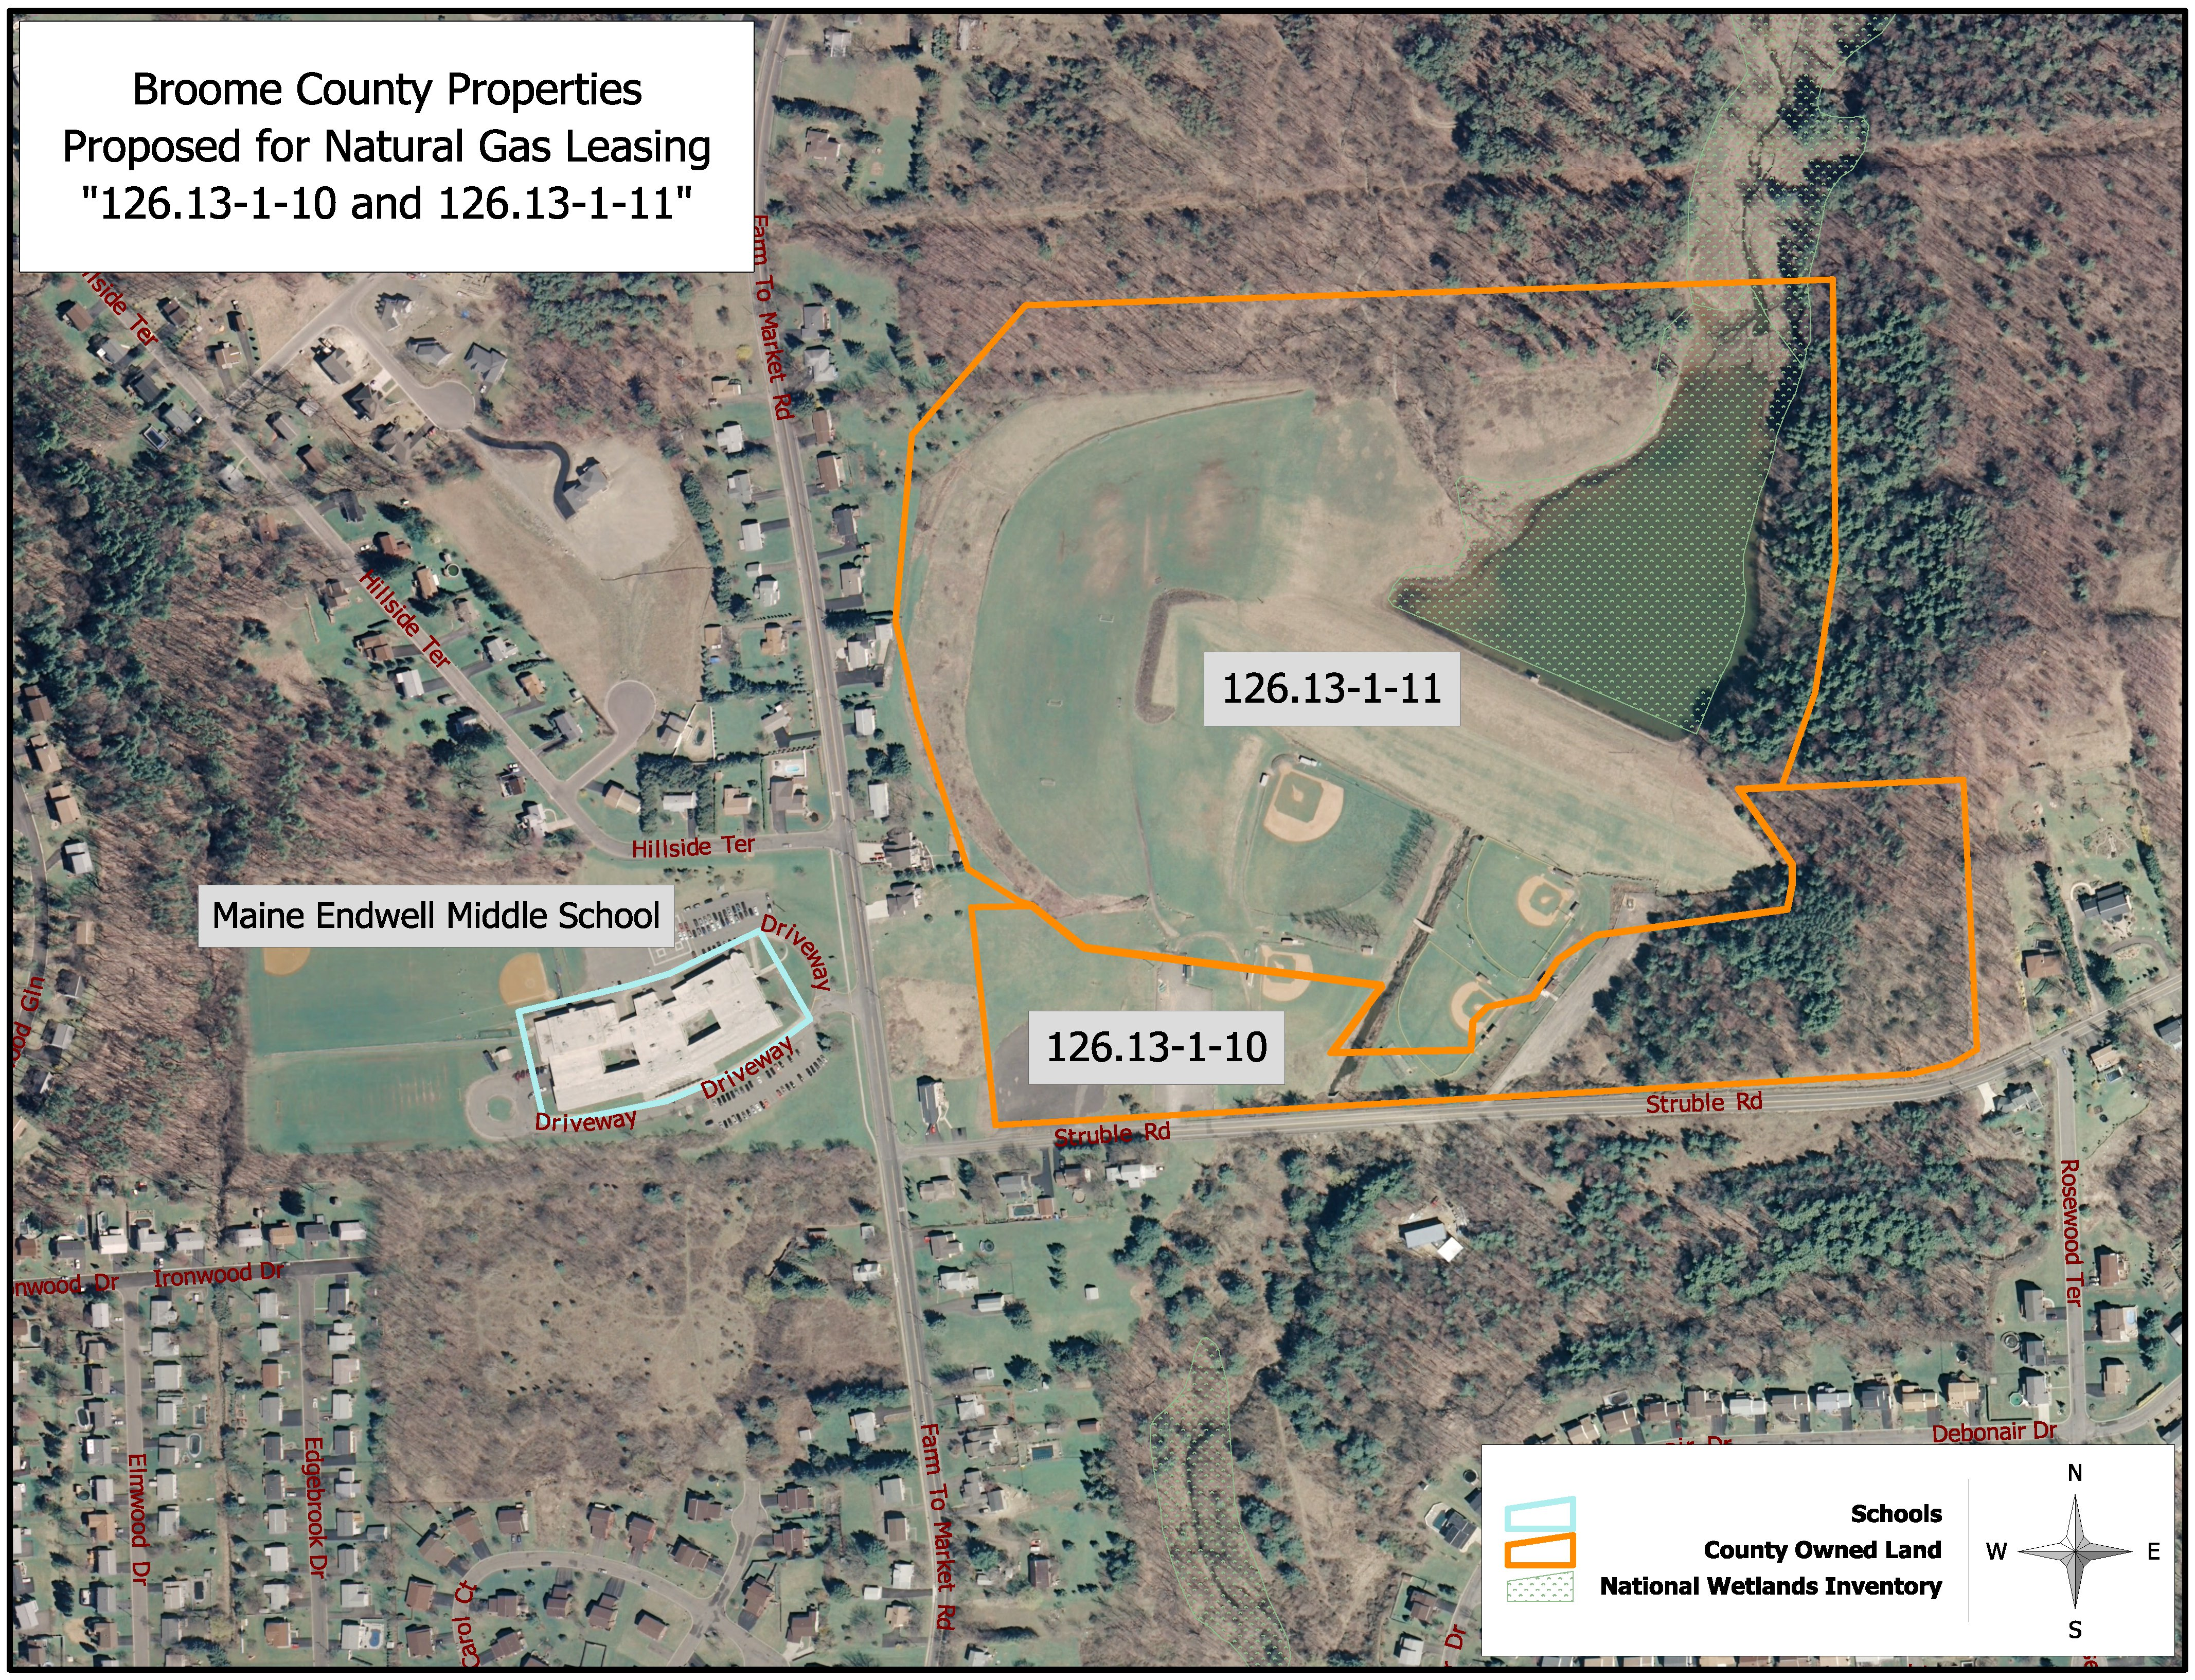 broome county proposed natural gas leasing